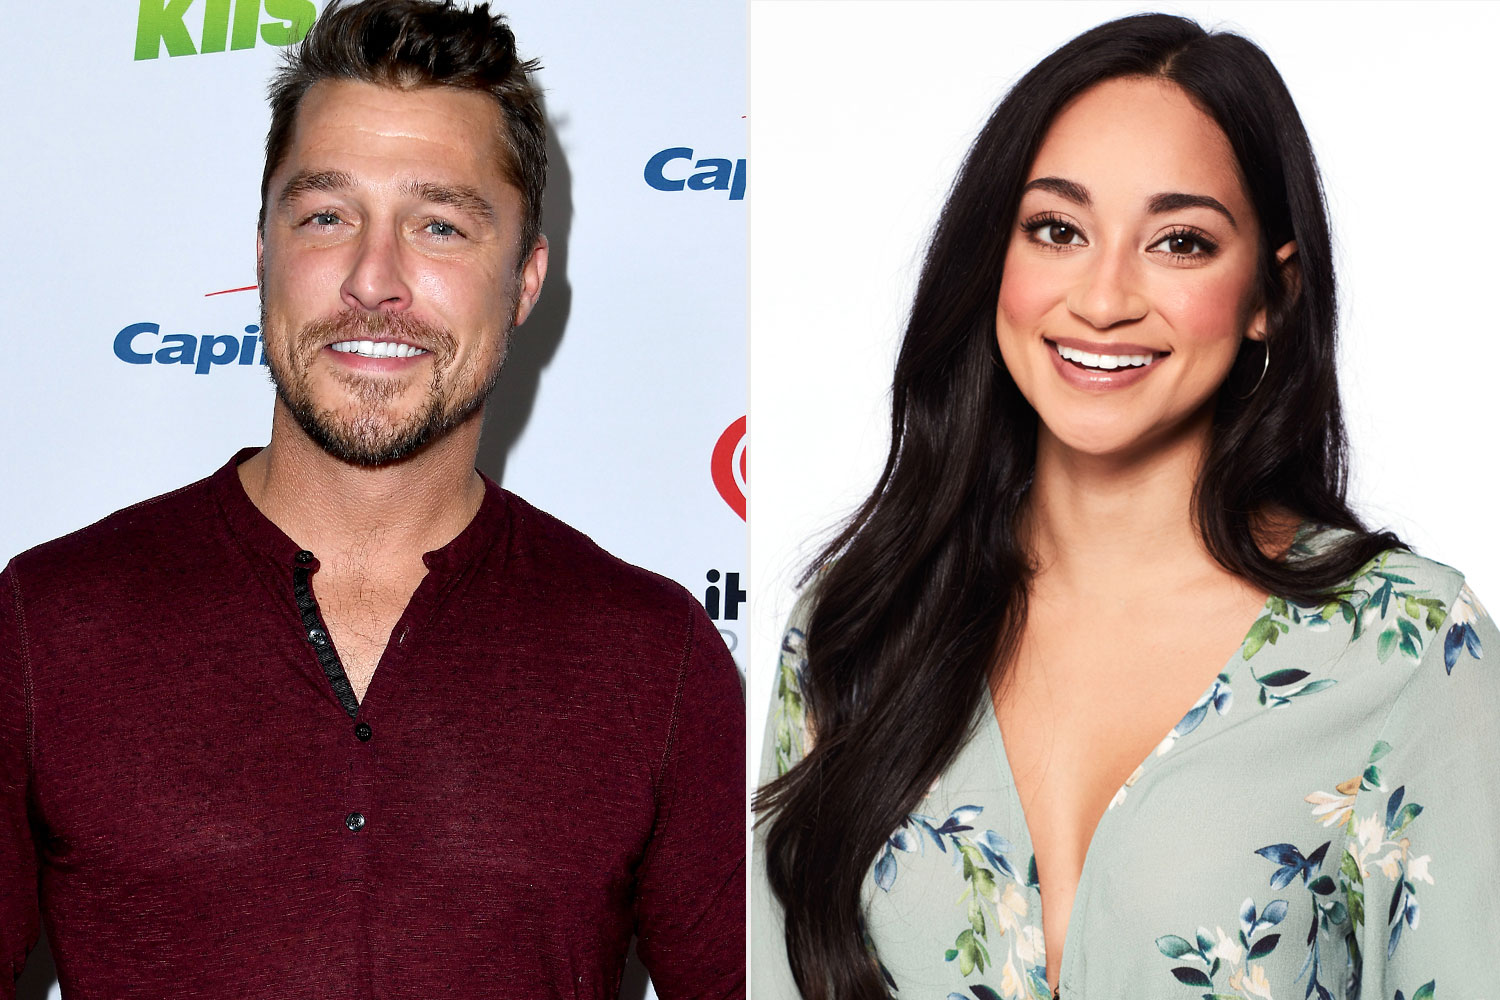 """The Bachelor couple have gone their separate ways, Fuller confirmed on Sept. 9.                             While sitting down with Nick Viall for hisViall Filespodcast, Fuller opened up about her recent split from Soules, who was the star ofThe Bachelor's season 19 in 2015.                             """"I am just living my best life,"""" said Fuller.                             Asked by Viall what happened between her and Soules, she said, """"we went a separate direction.""""                             Despite their split, Fuller has immense respect for Soules.                             """"But I respect him so much. I think he's an amazing man. I just think that like right now, I'm in such a different place than he is,"""" she said, """"And I'm not moving to Iowa anytime soon.""""                             """"So I just want to focus on me,"""" she continued. """"It's been so much about other people this year that I just really wanna like hone in on what I want to accomplish and like what I want to get out of this year and looking forward to my career in the future.""""                             Admitting that their relationship is """"complicated,"""" Fuller said, """"I'm just living my life and he is an amazing man and he deserves somebody super awesome who's willing to like go to Iowa and live in Iowa and right now I'm just not there yet. Maybe I will be in a couple years."""""""